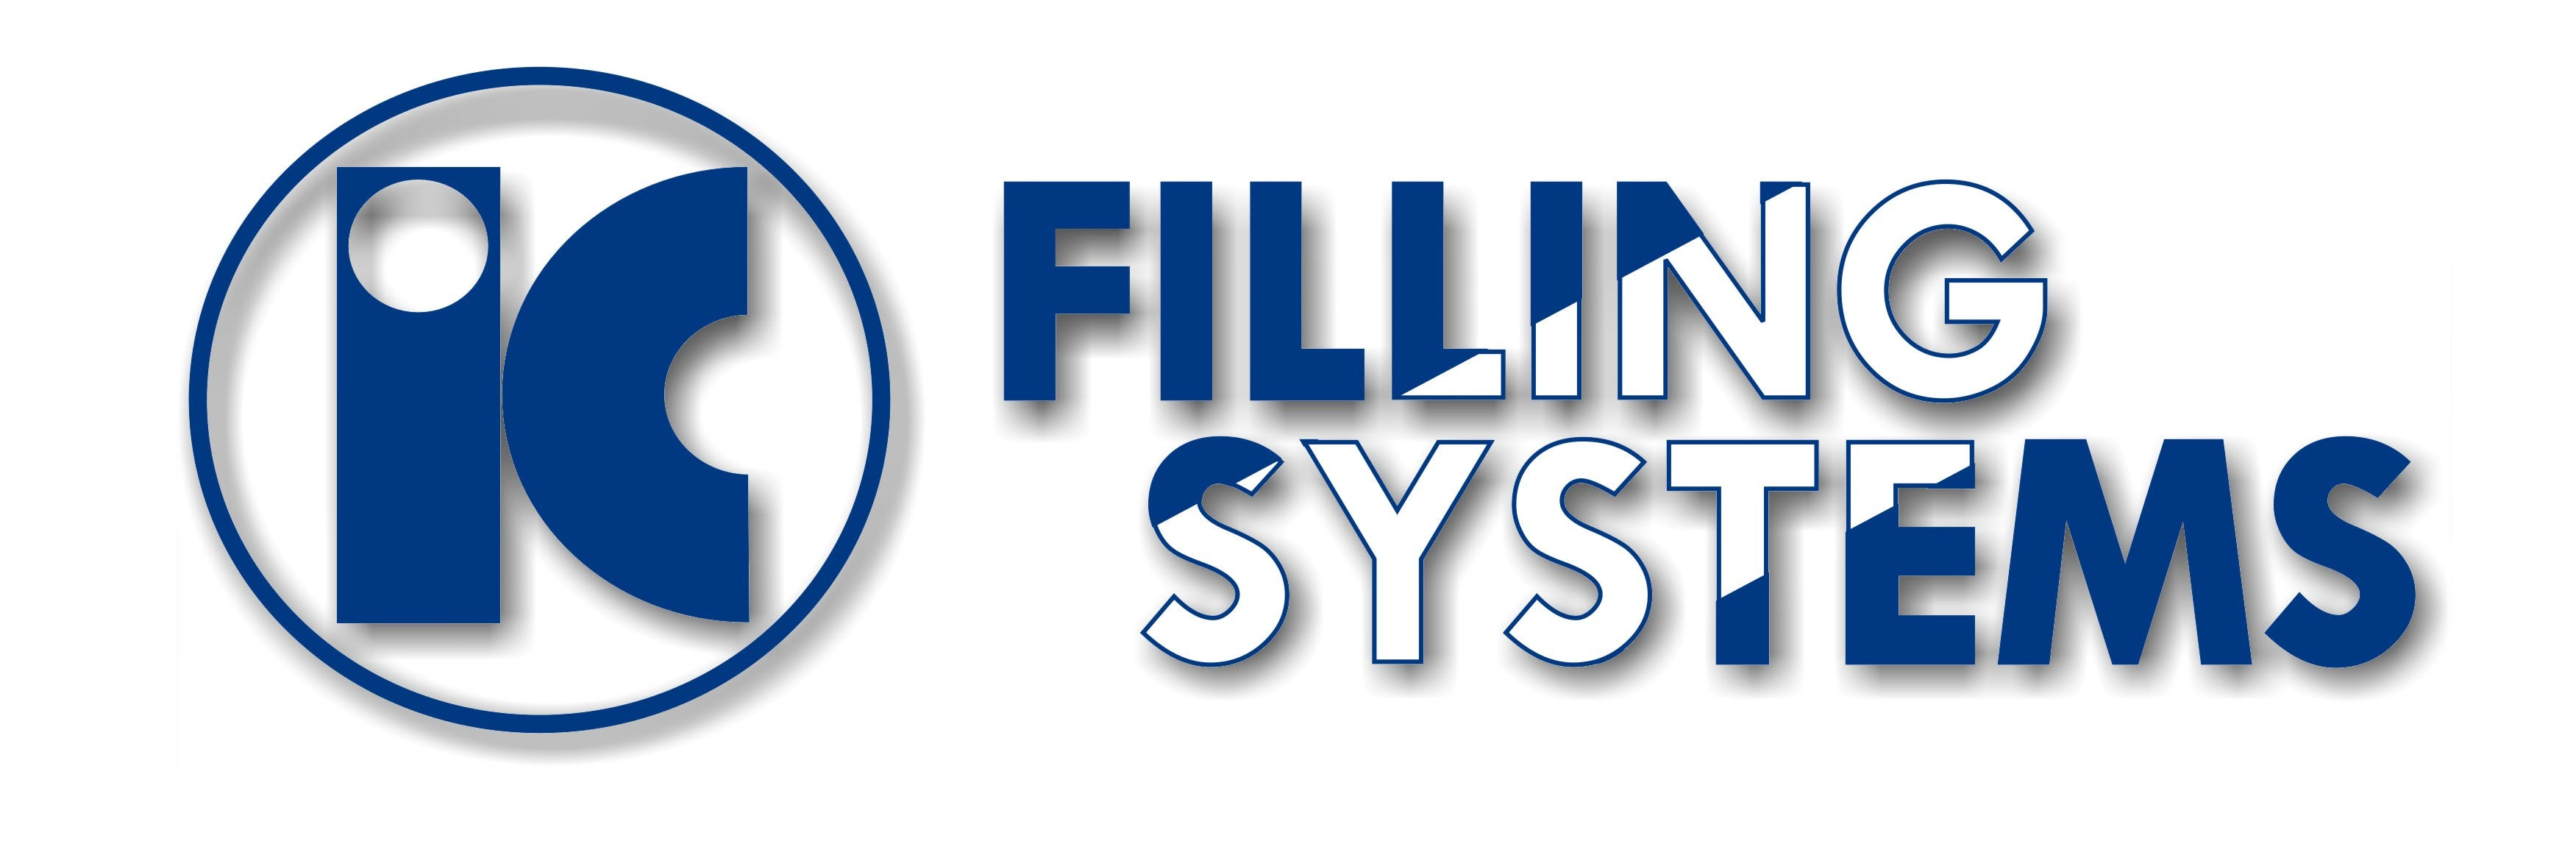 IC Filling Systems logo